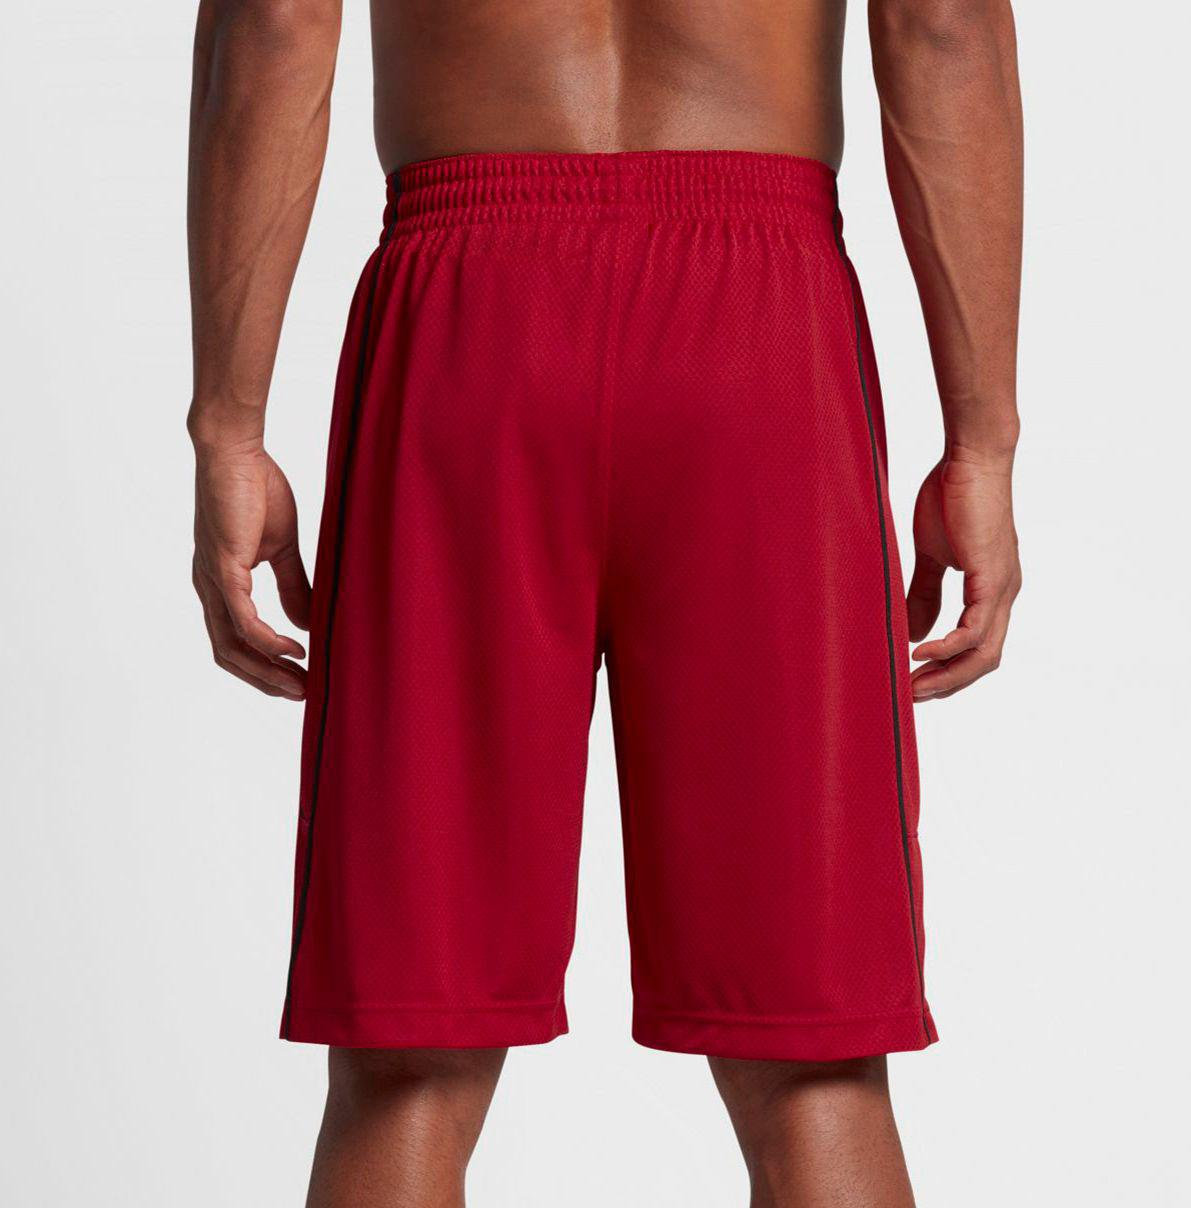 0dfdccc73d76 Lyst - Nike Jordan Double Crossover Basketball Shorts in Red for Men